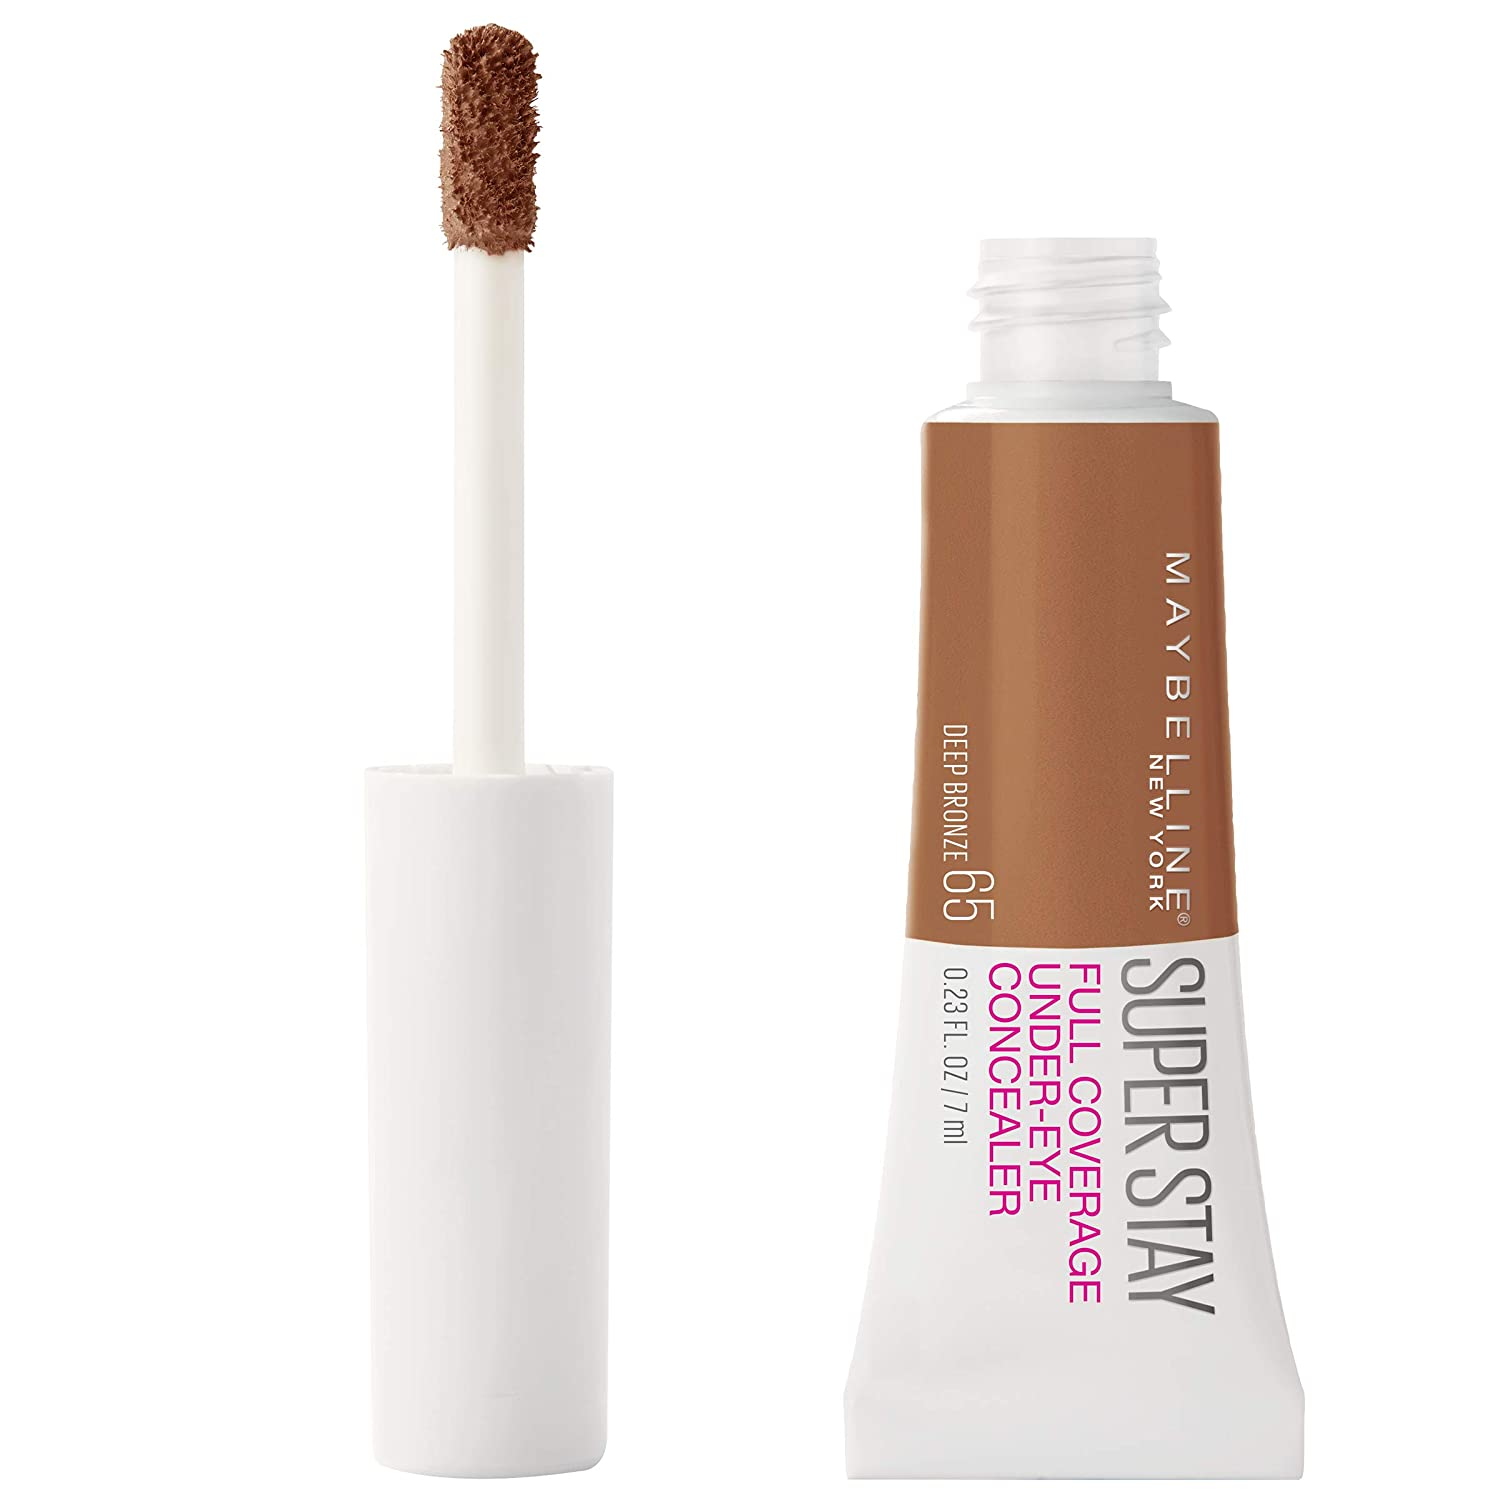 Maybelline Super Stay Super Stay Full Coverage, Brightening, Long Lasting, Under-eye Concealer Liquid Makeup For Up To 24H Wear, With Paddle Applicator, Deep Bronze, 0.23 fl. oz, 65 Deep Bronze